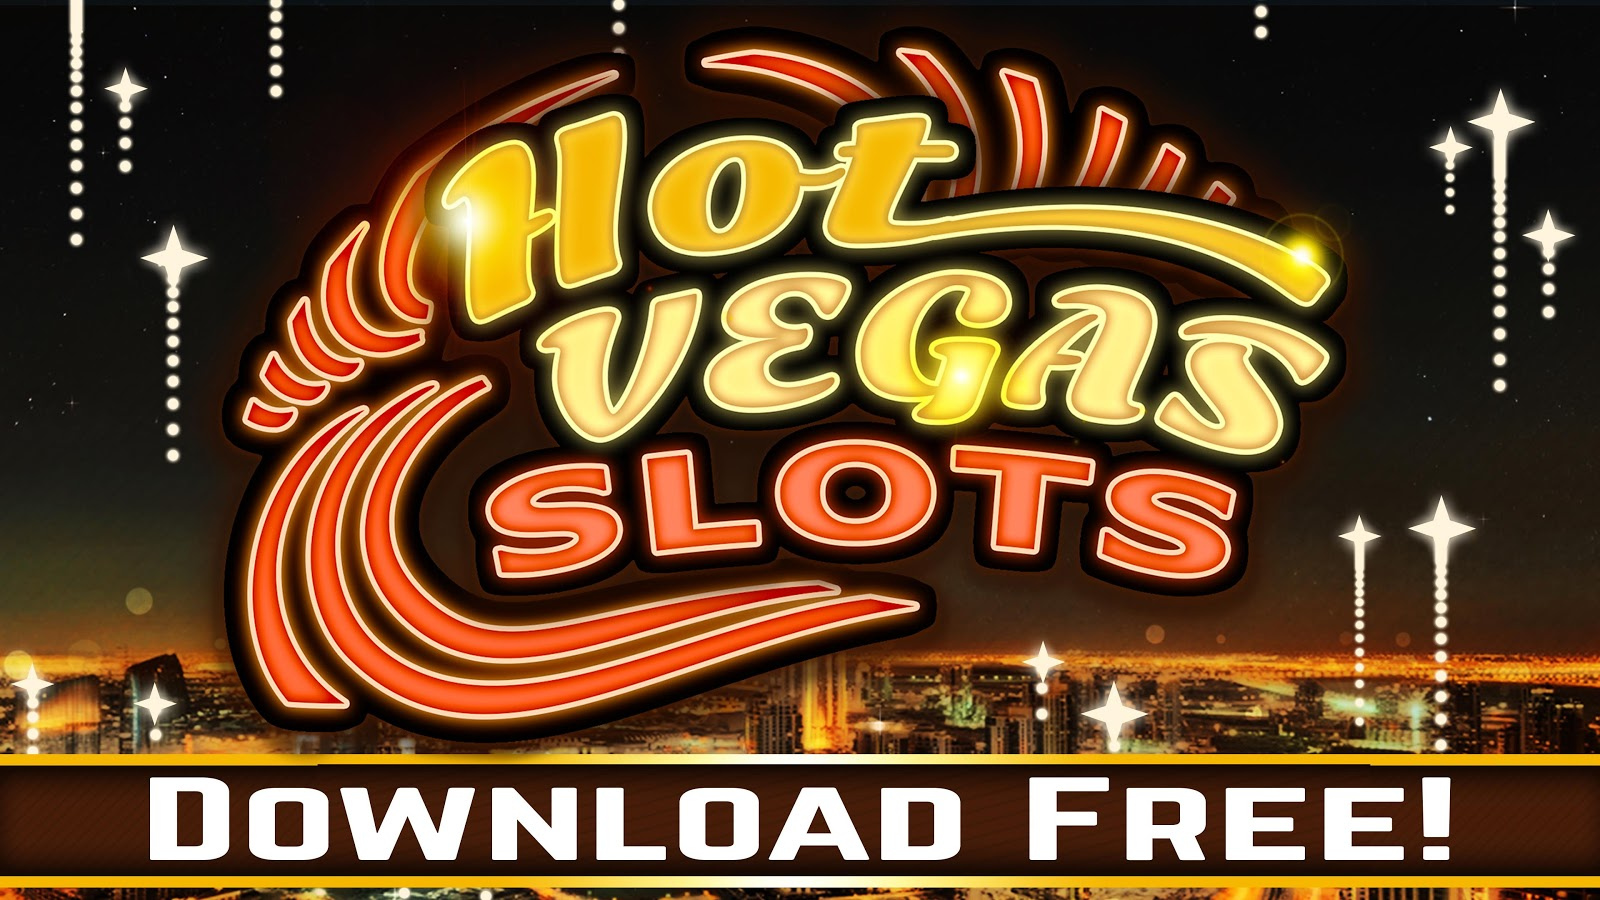 Topshot Slot - Try it Online for Free or Real Money